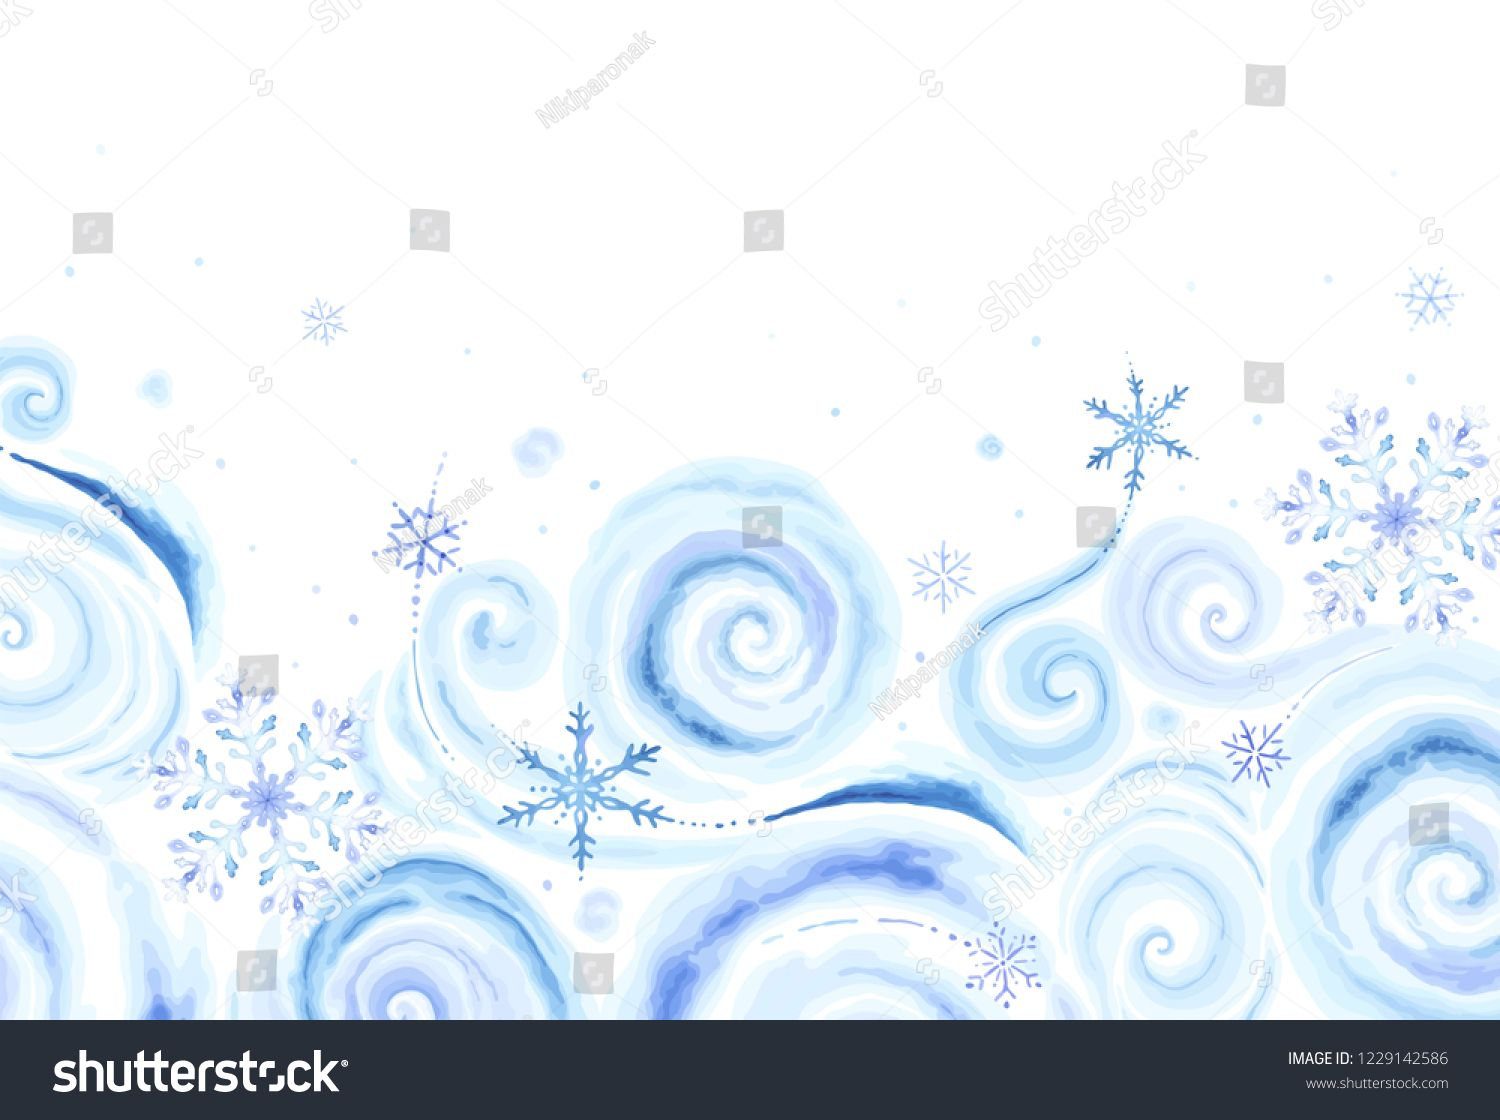 Christmas rectangle banner with colorful snowflakes and winter blizzards for your text in vintage watercolor style. Vector holiday illustration blue, purple and turquoise colors on white background. #Sponsored , #ad, #blizzards#winter#text#watercolor